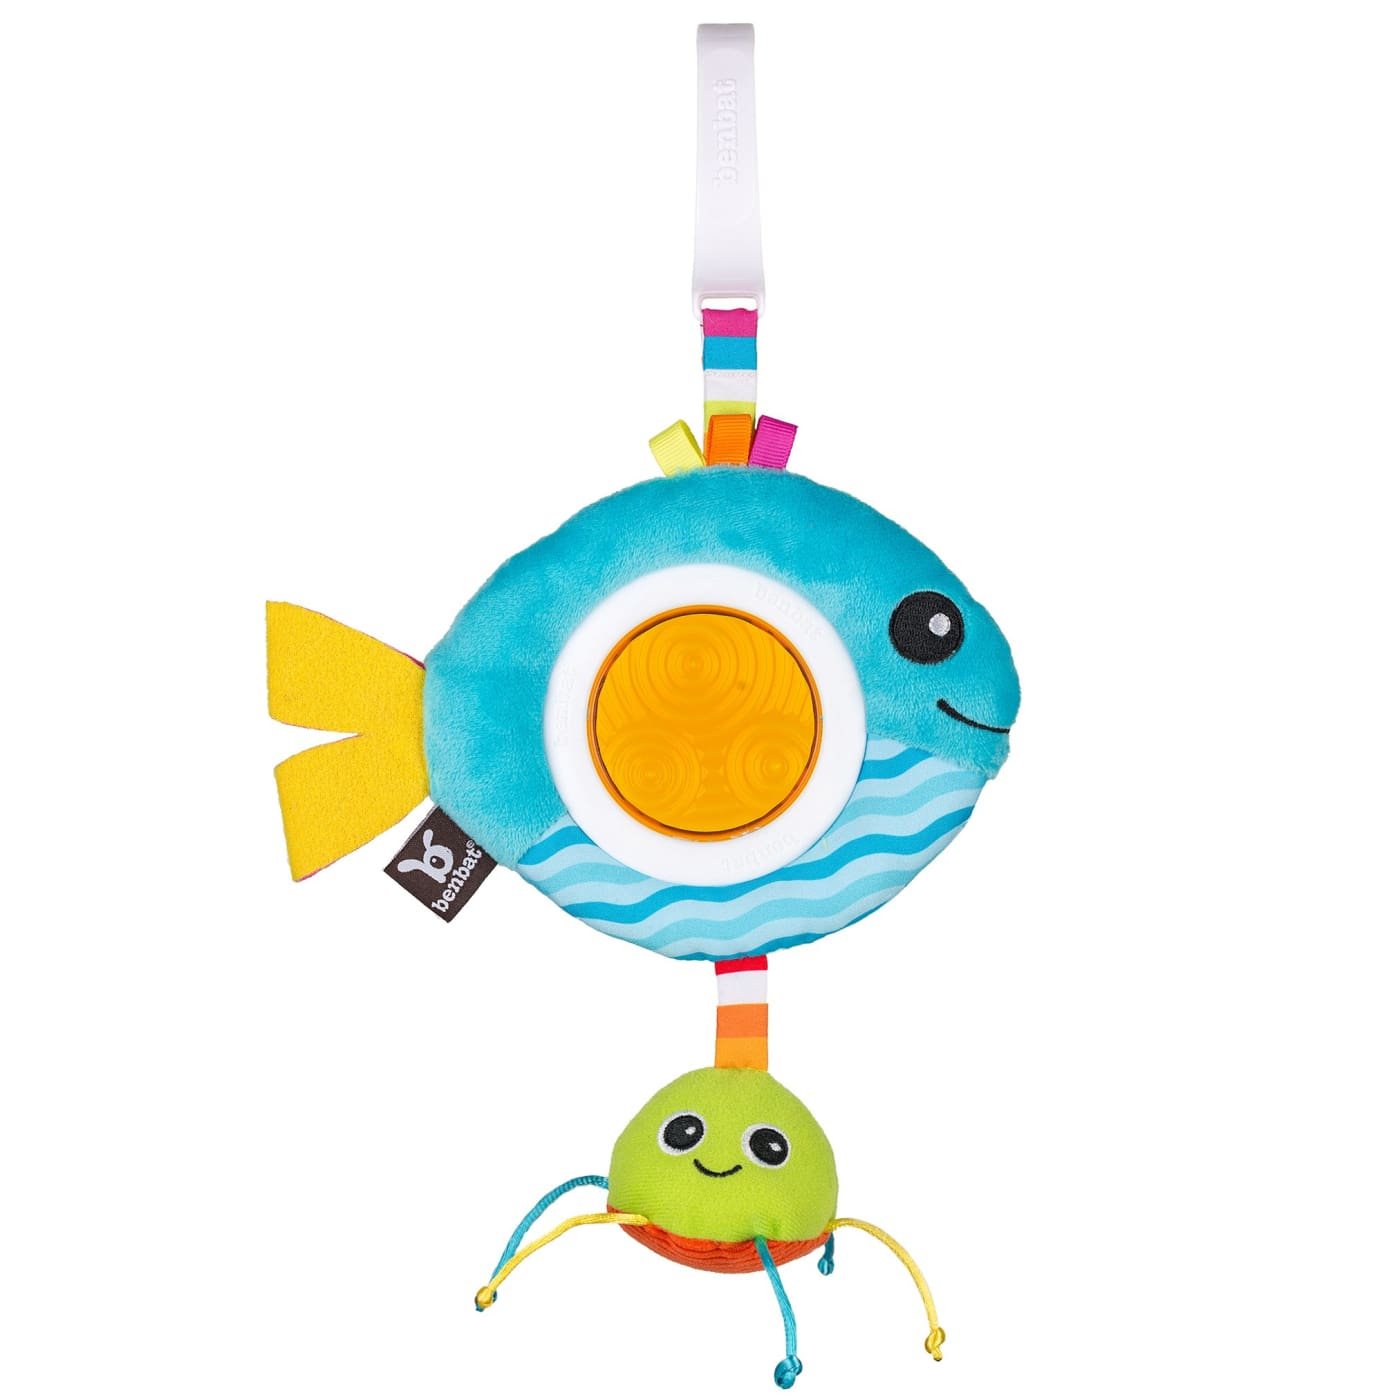 Benbat Dazzle Friends Travel Rattles - Fish - TOYS & PLAY - CLIP ON TOYS